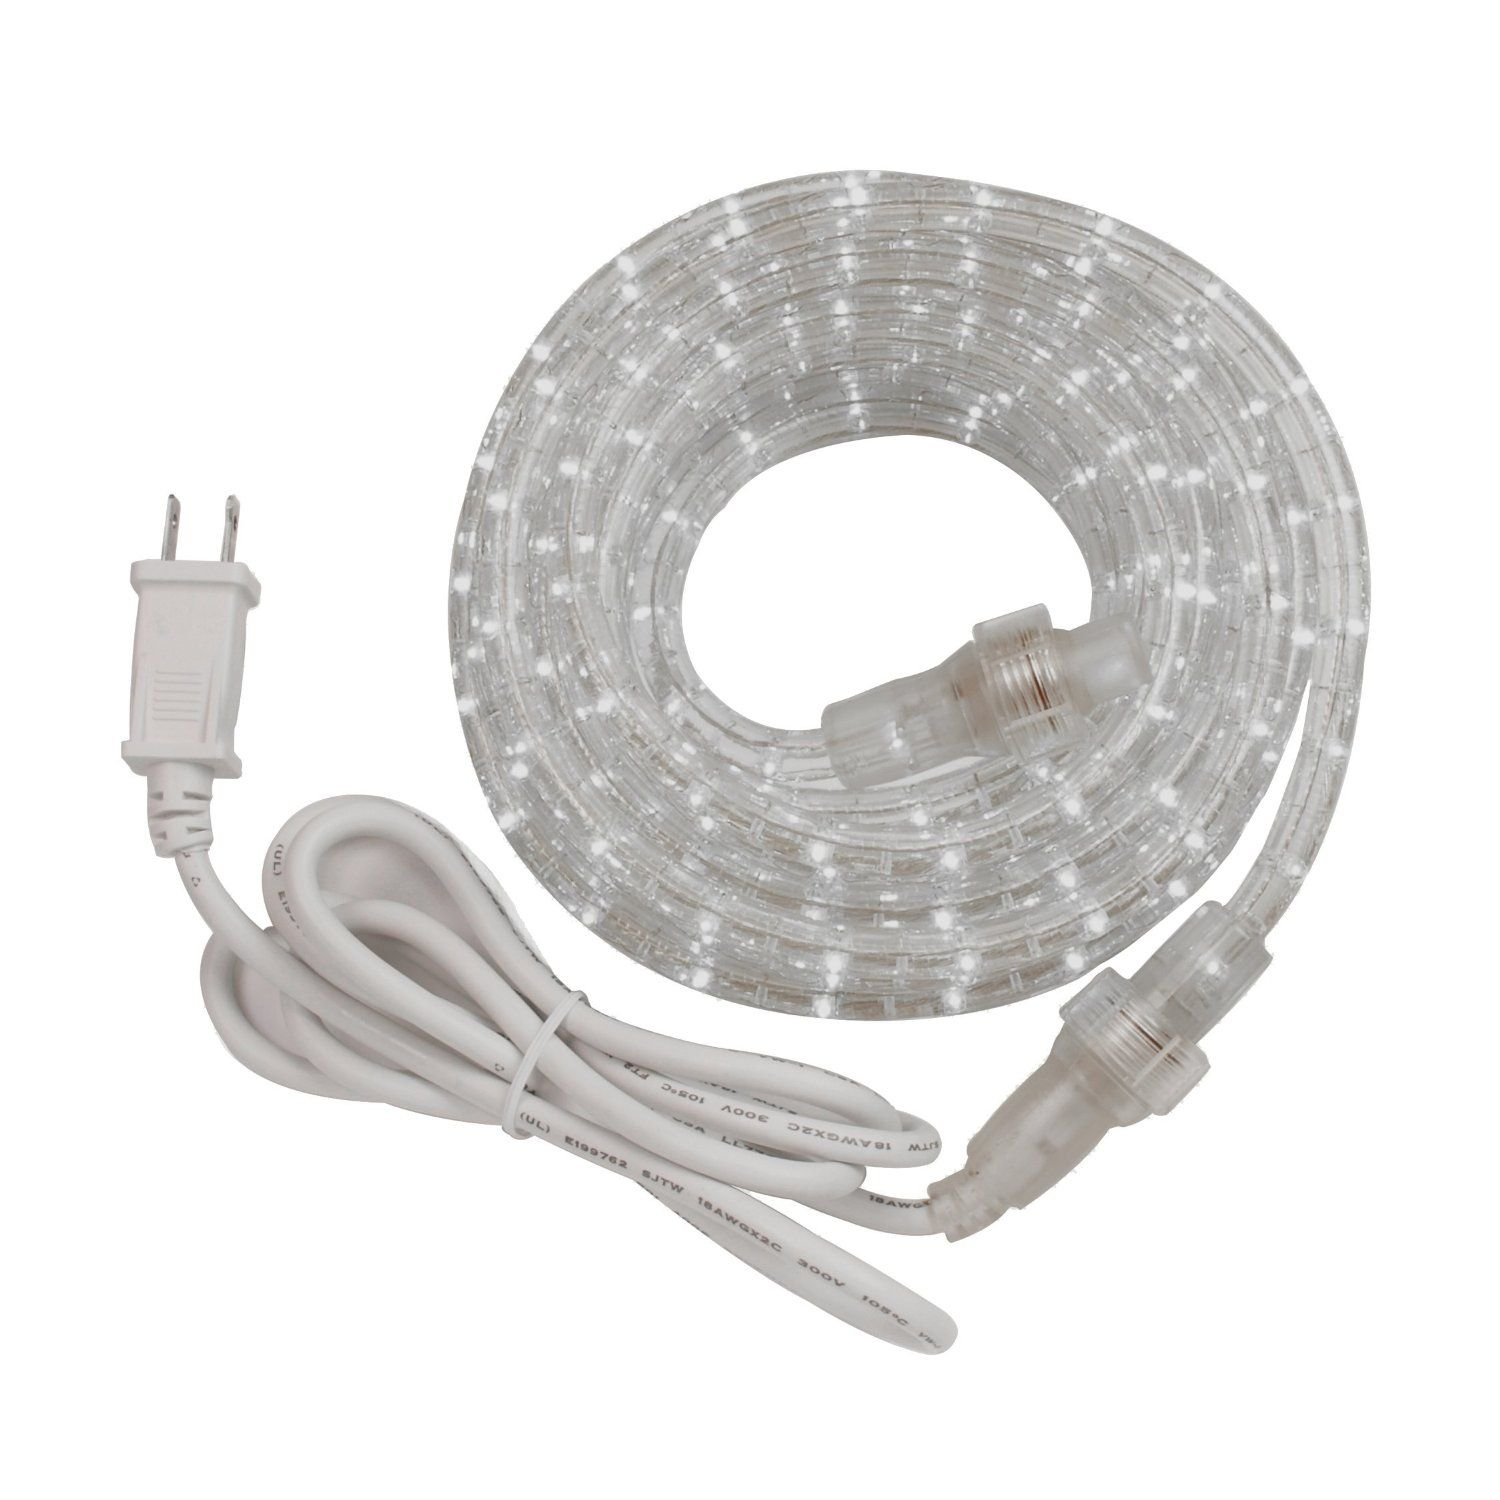 Check This Top 10 Best Rope Lights In Reviews Check